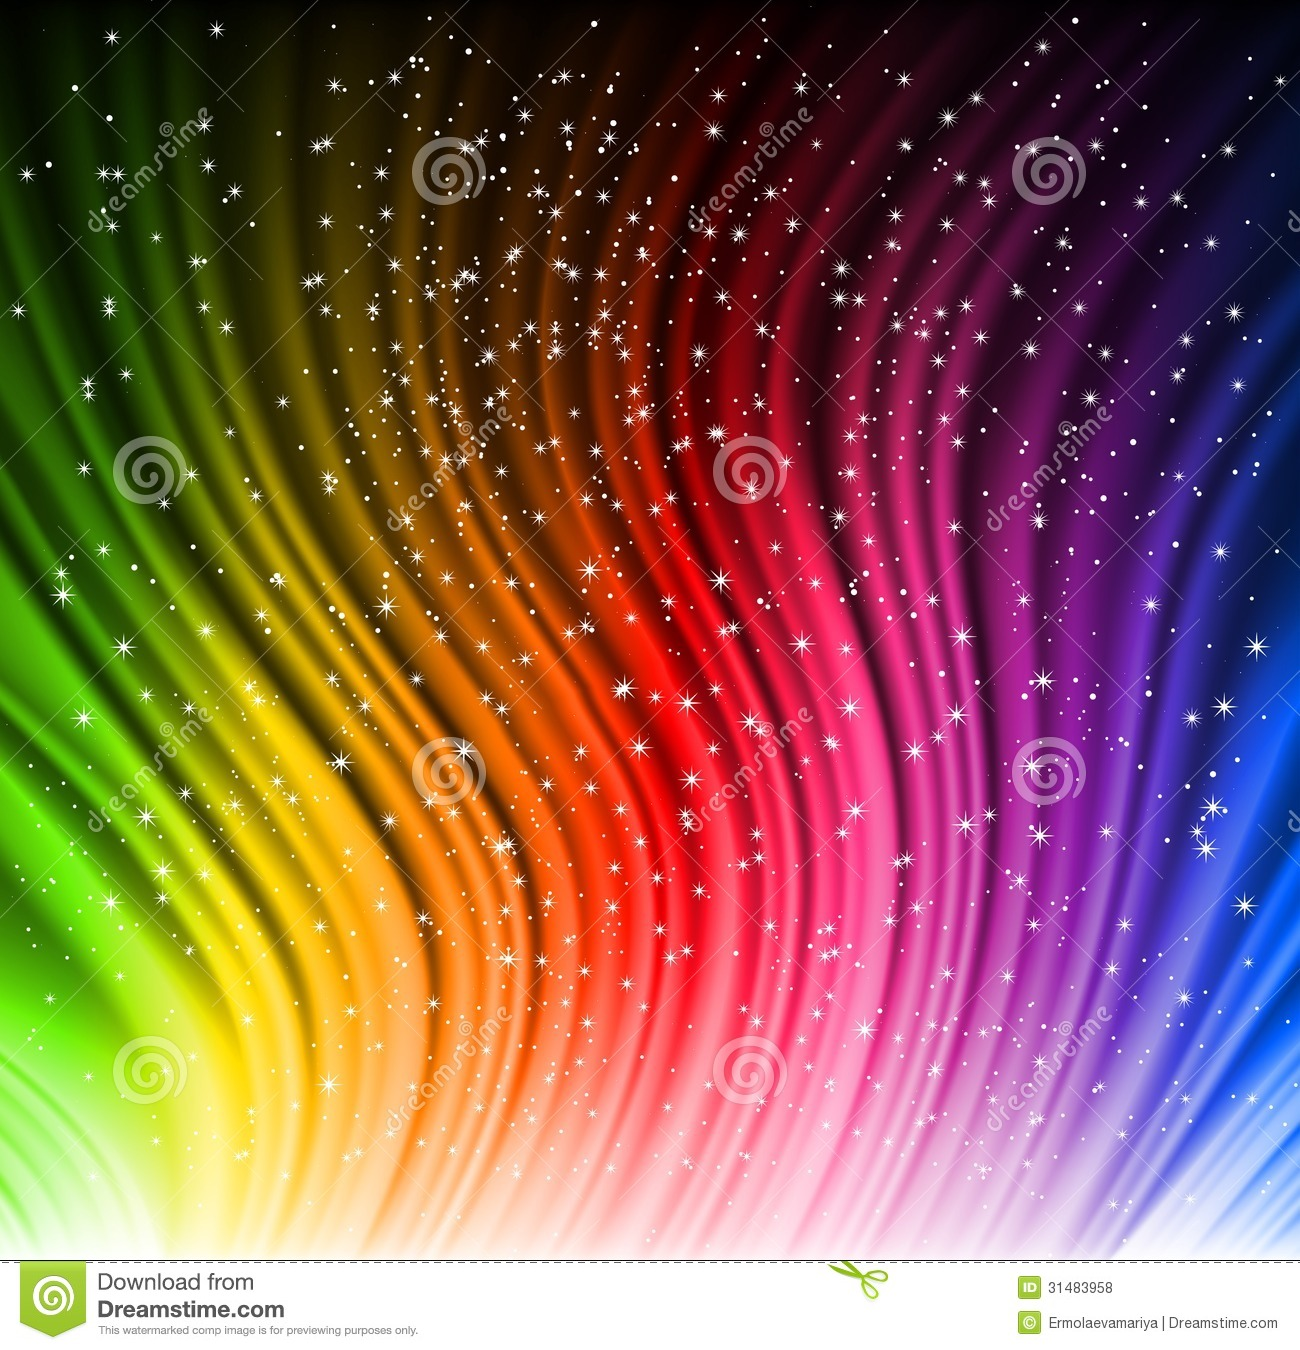 Star Light Star Bright >> Shine Rainbow Wave With Stars. Vector Stock Vector - Image: 31483958